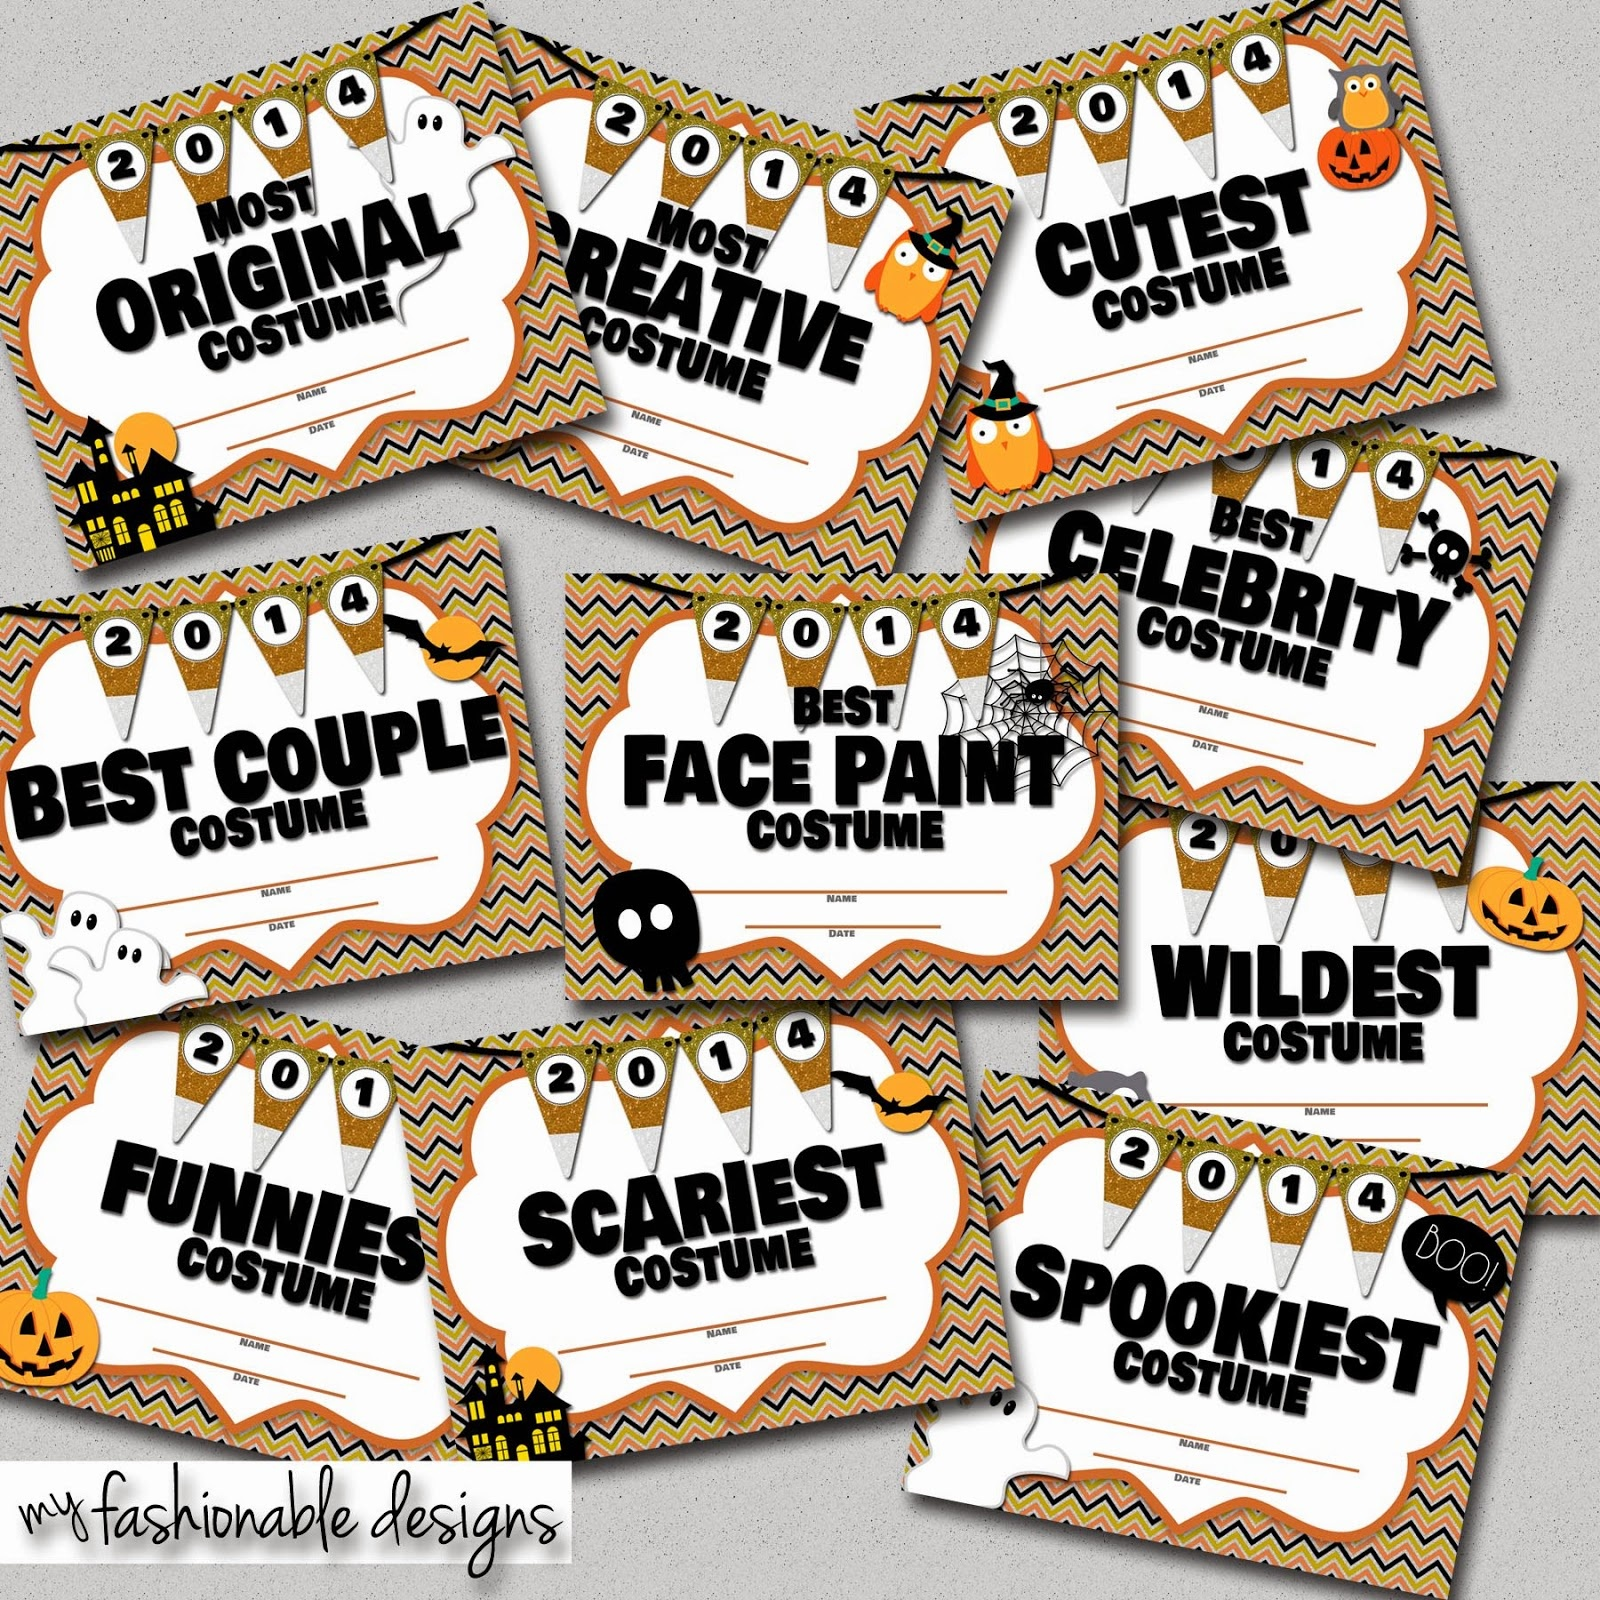 My Fashionable Designs: Halloween Costume Contest Certificates - Best Costume Certificate Printable Free